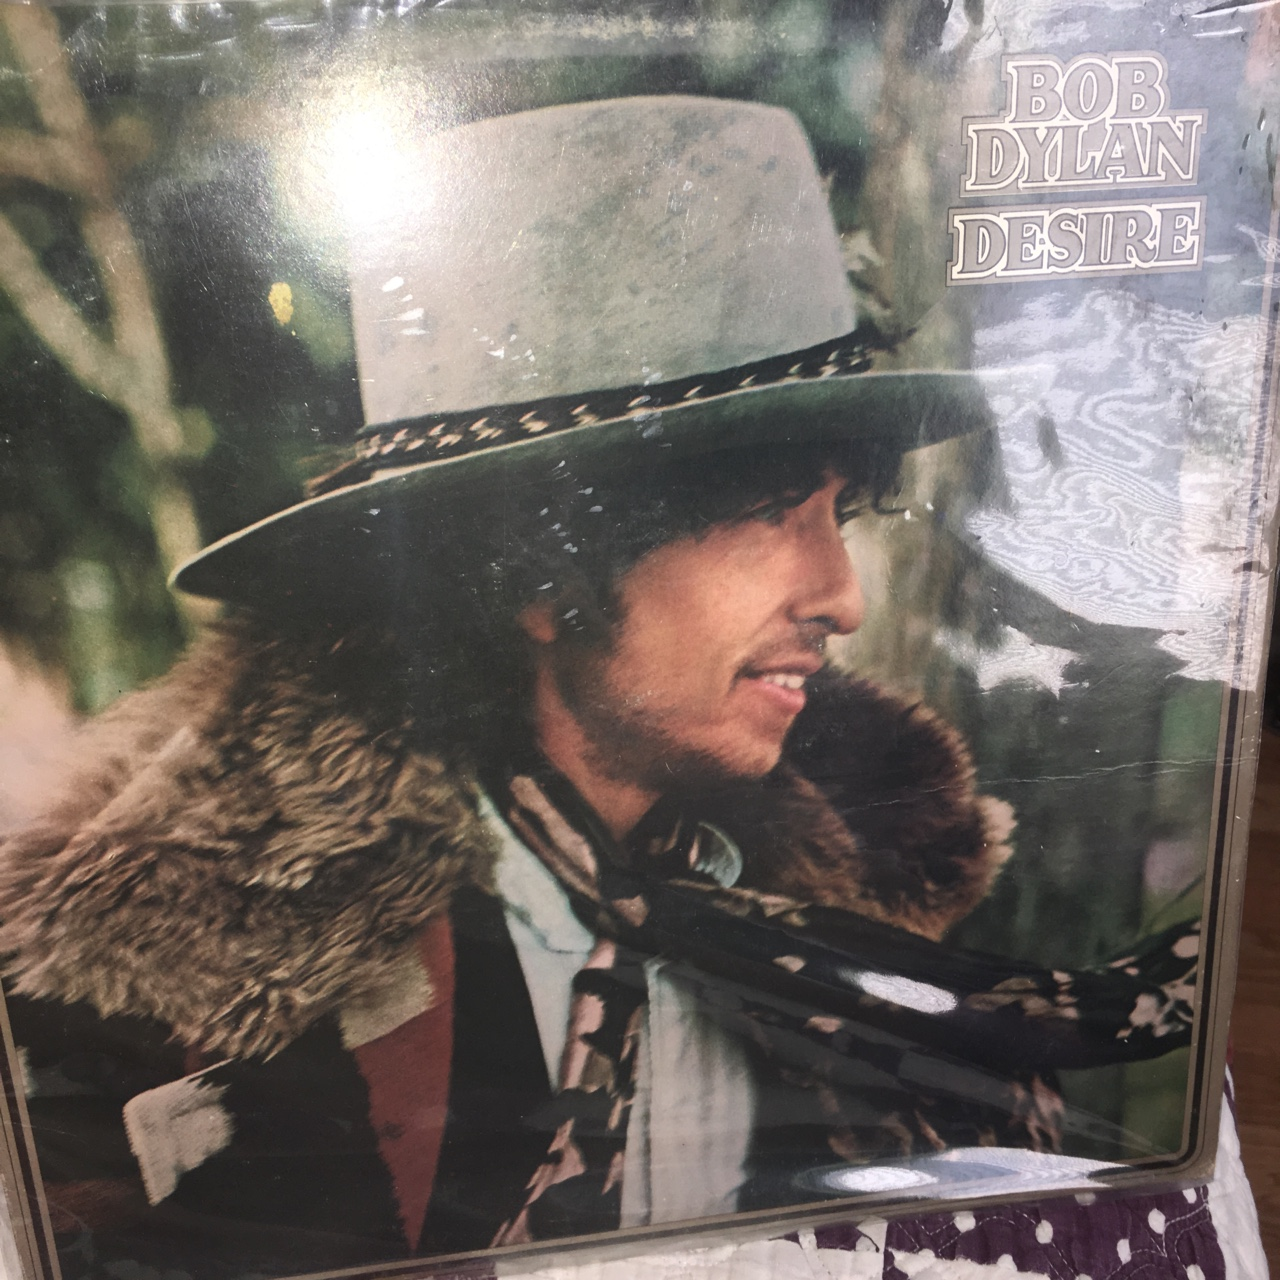 Bob Dylan - Desire vinyl LP In very great    - Depop